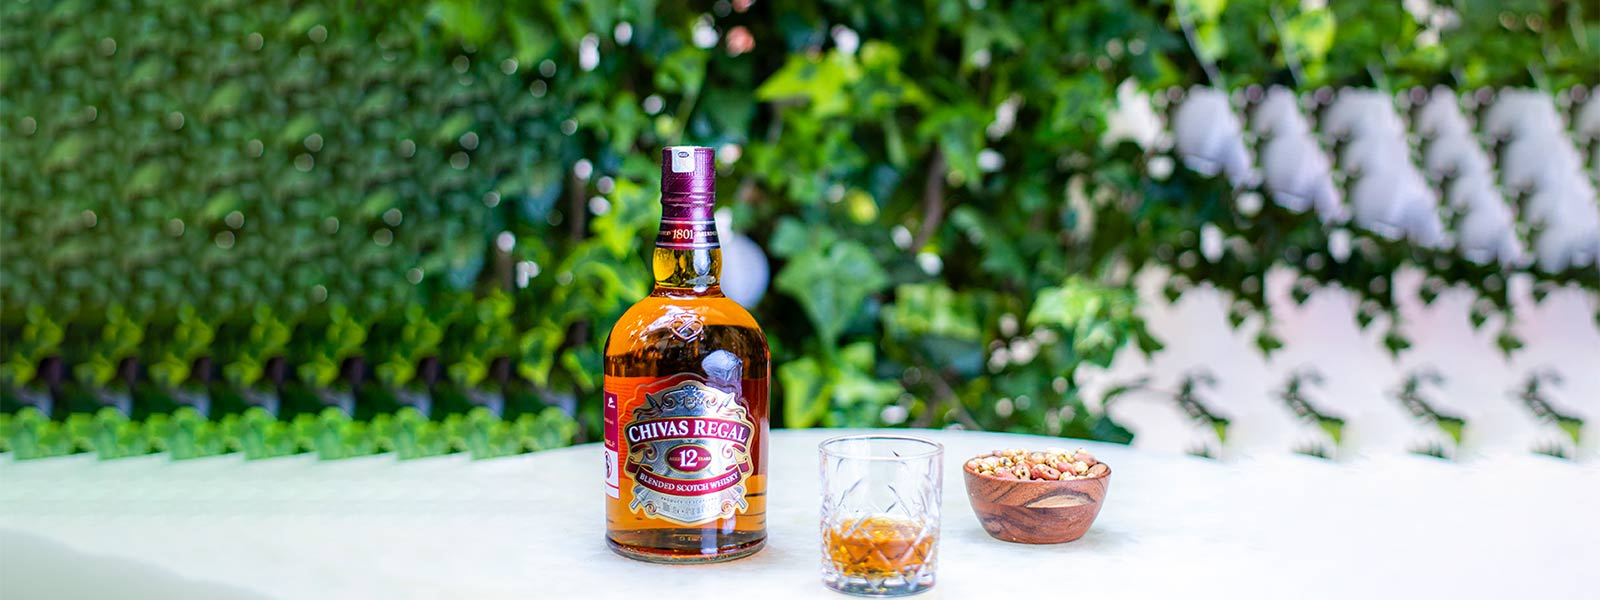 chivas regal premium whisky